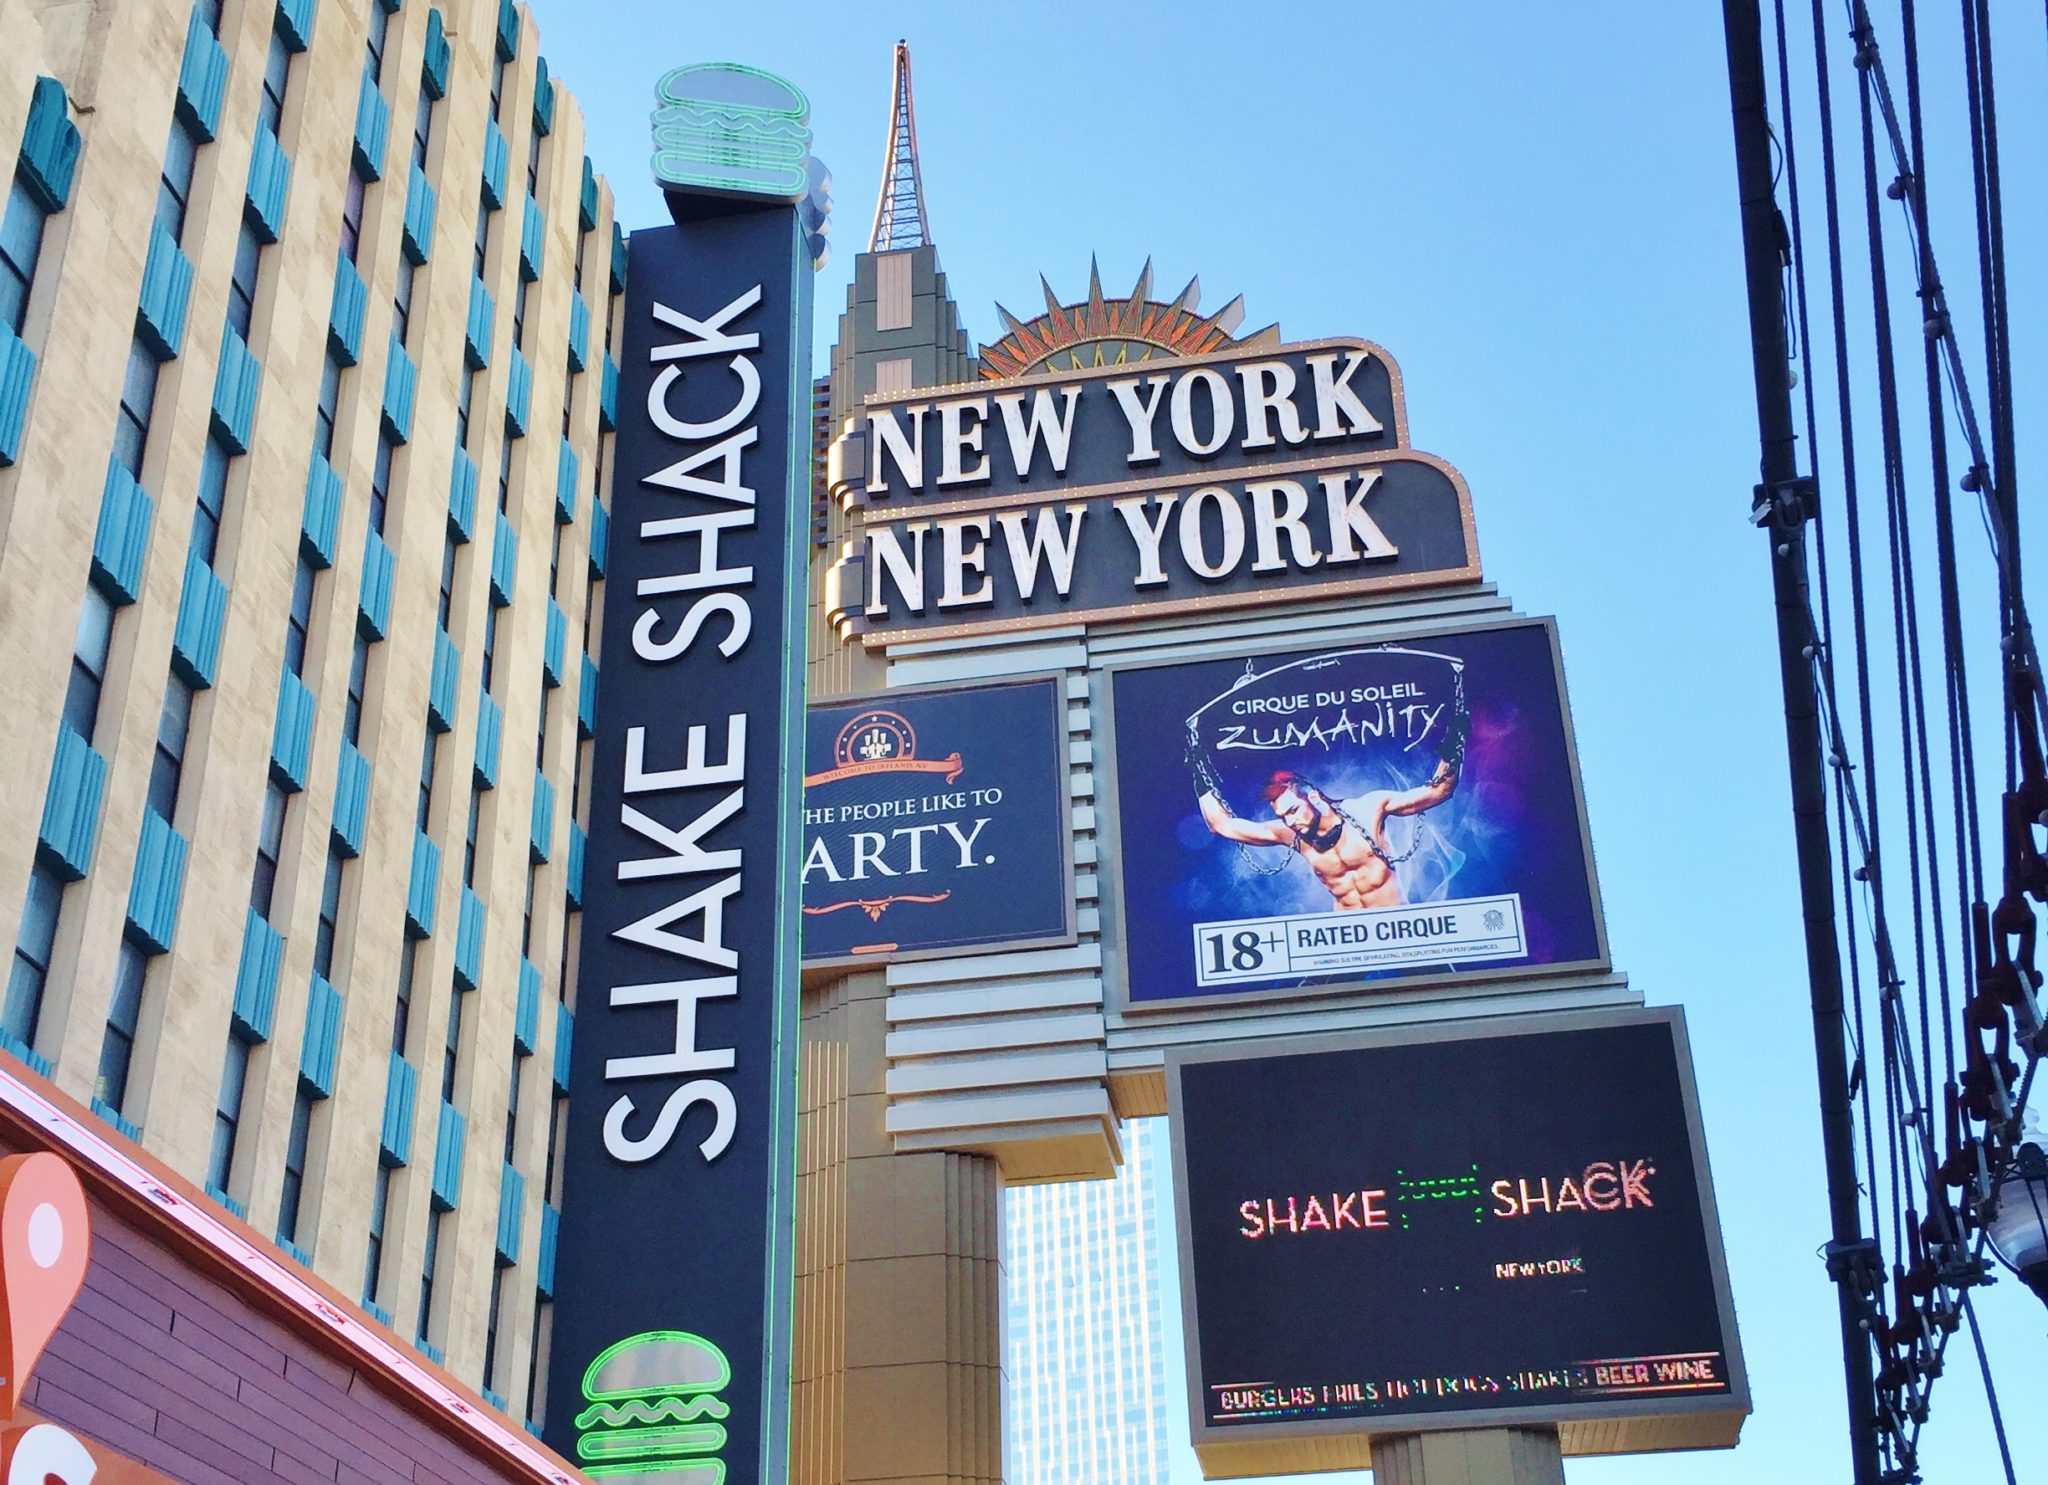 Enjoy Celebrity Radio's Shake Shack Review Las Vegas…. There's no question that Shake Shack is one of the most talked about and popular brands in […]